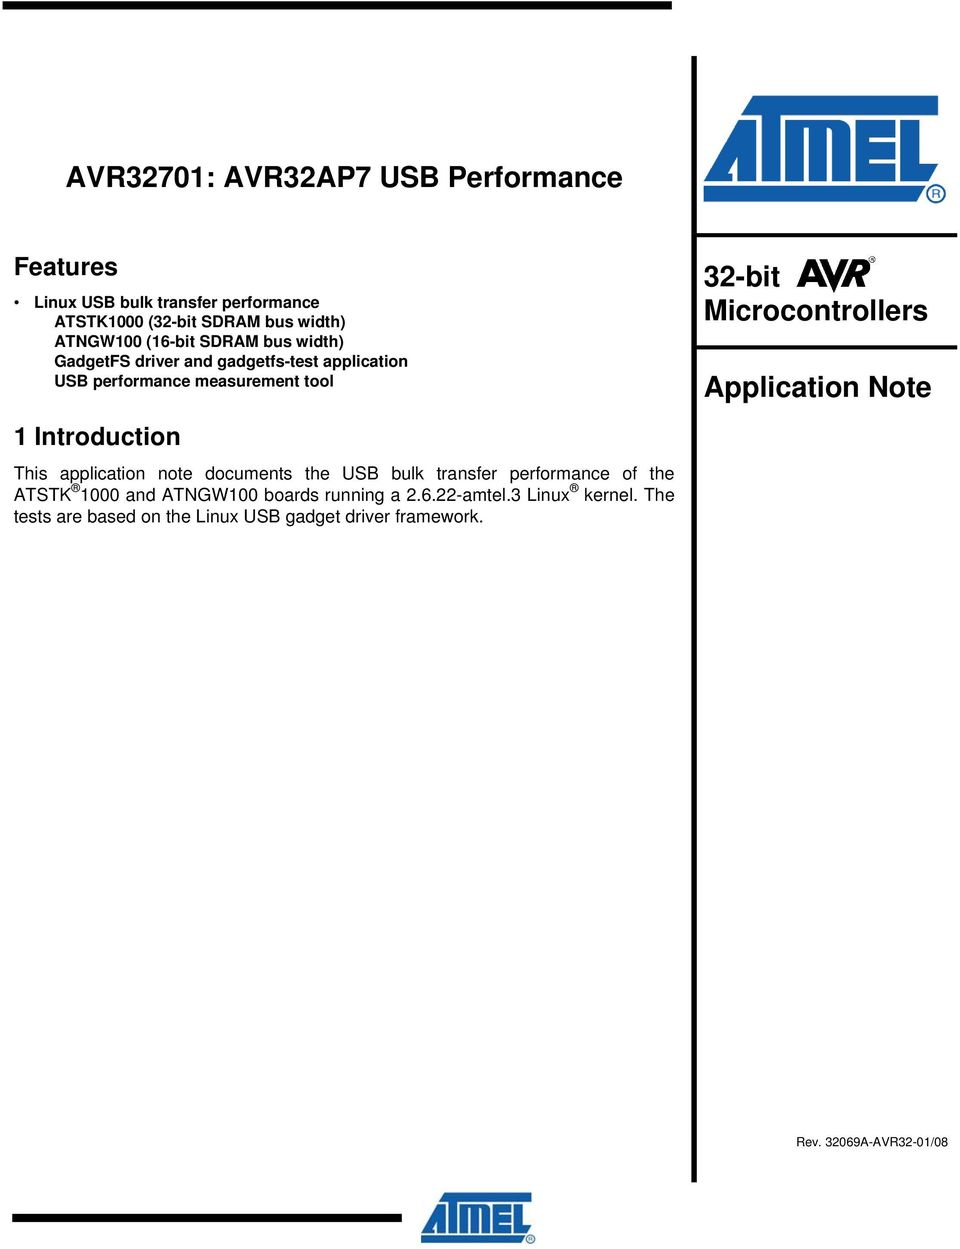 application note documents the USB bulk transfer performance of the ATSTK 1000 and ATNGW100 boards running a 2.6.22-amtel.